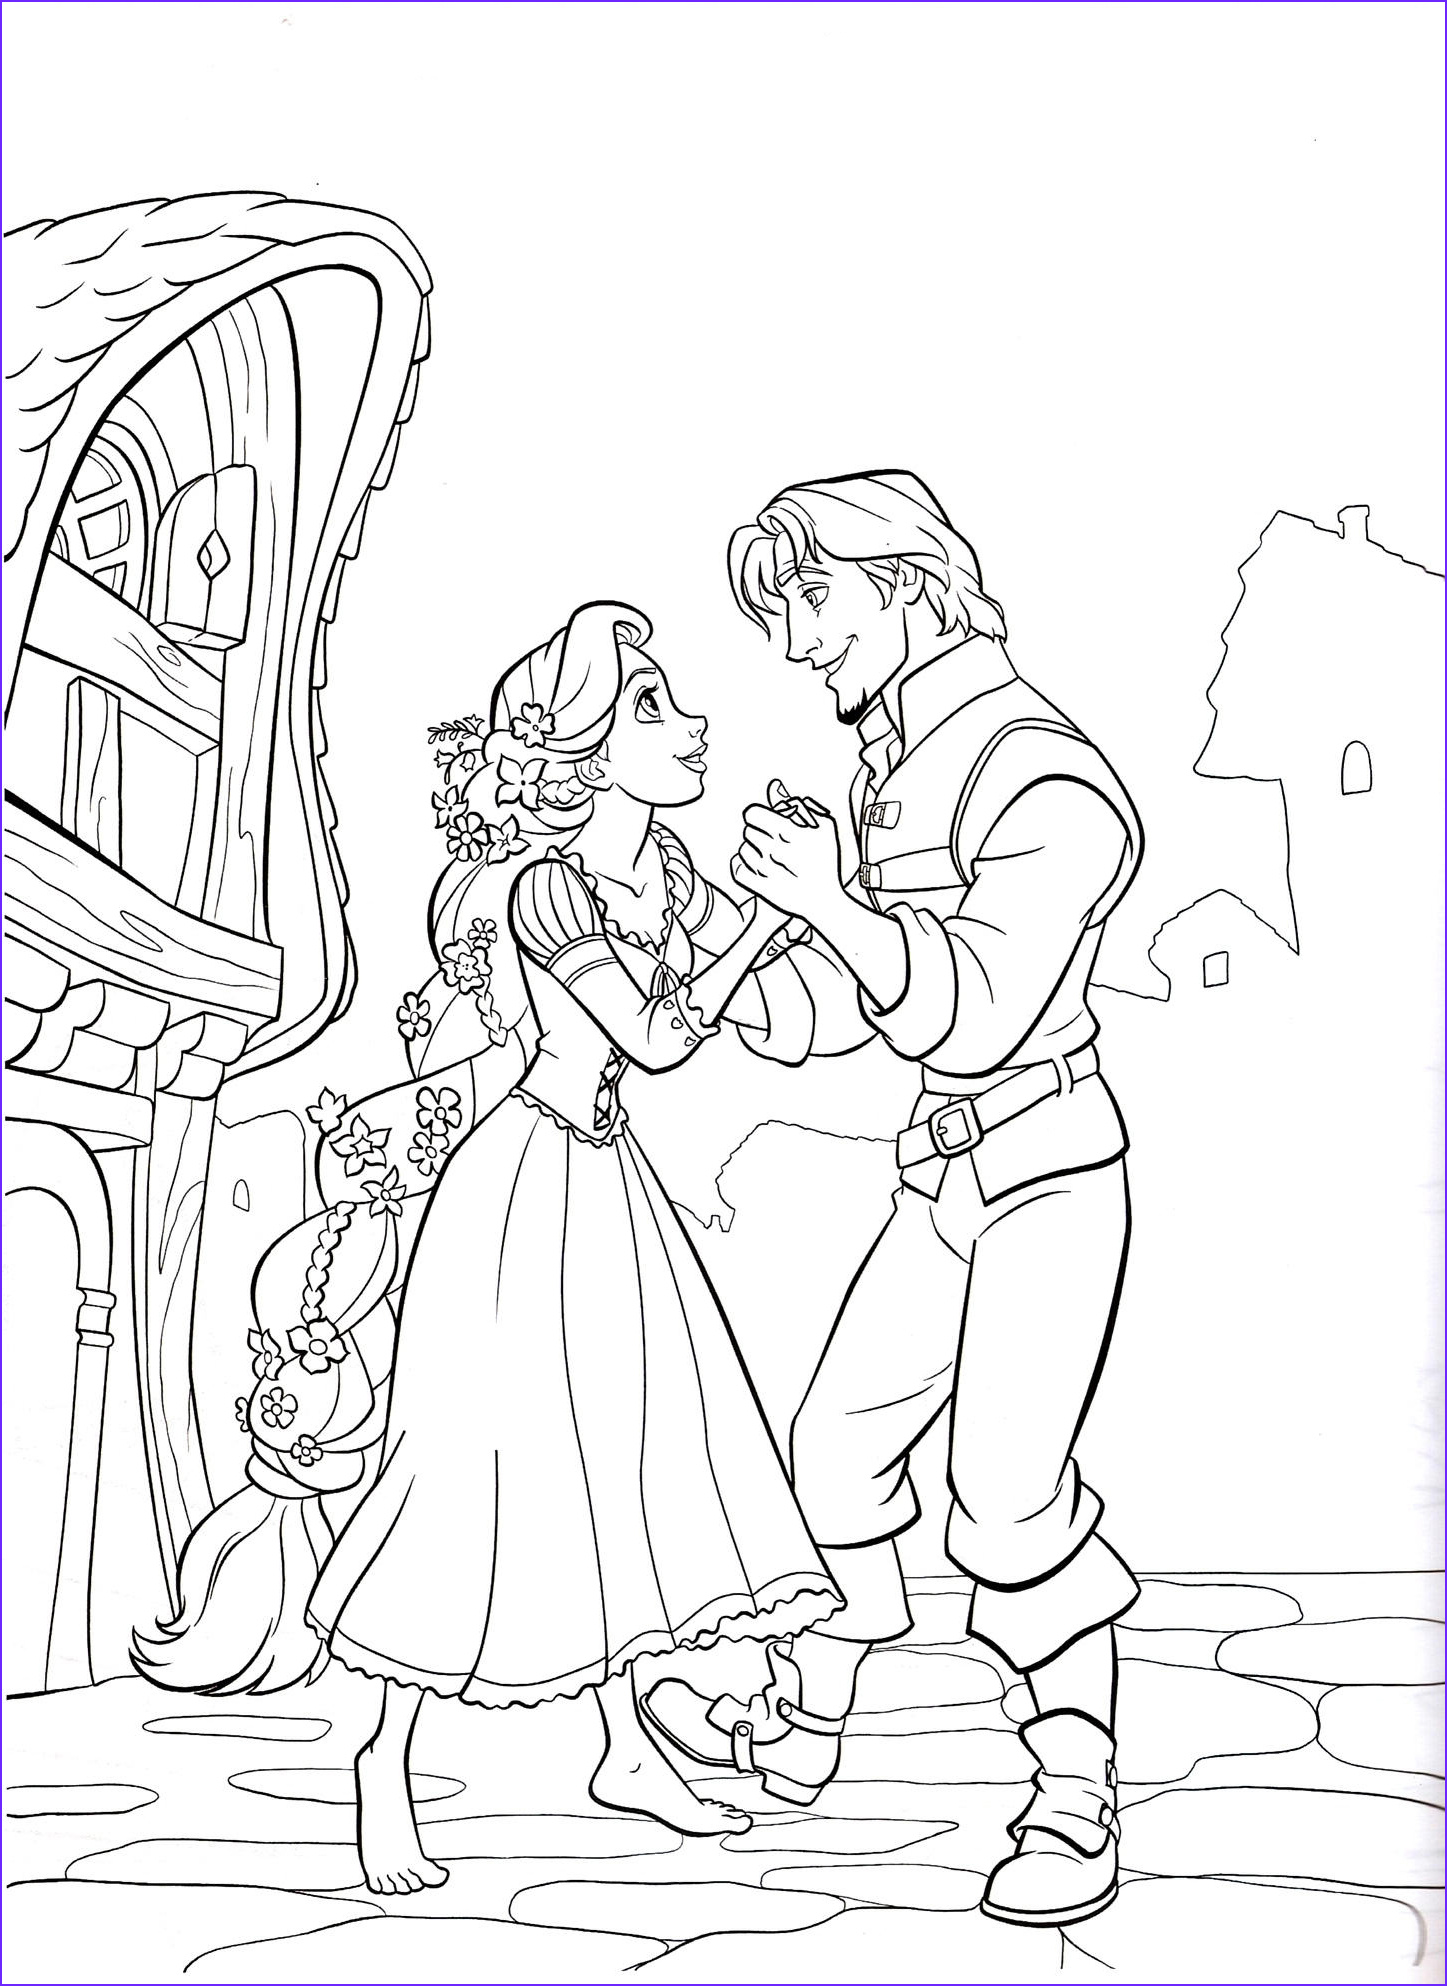 Coloring Pages Disney Best Of Collection Rapunzel Coloring Pages Best Coloring Pages for Kids